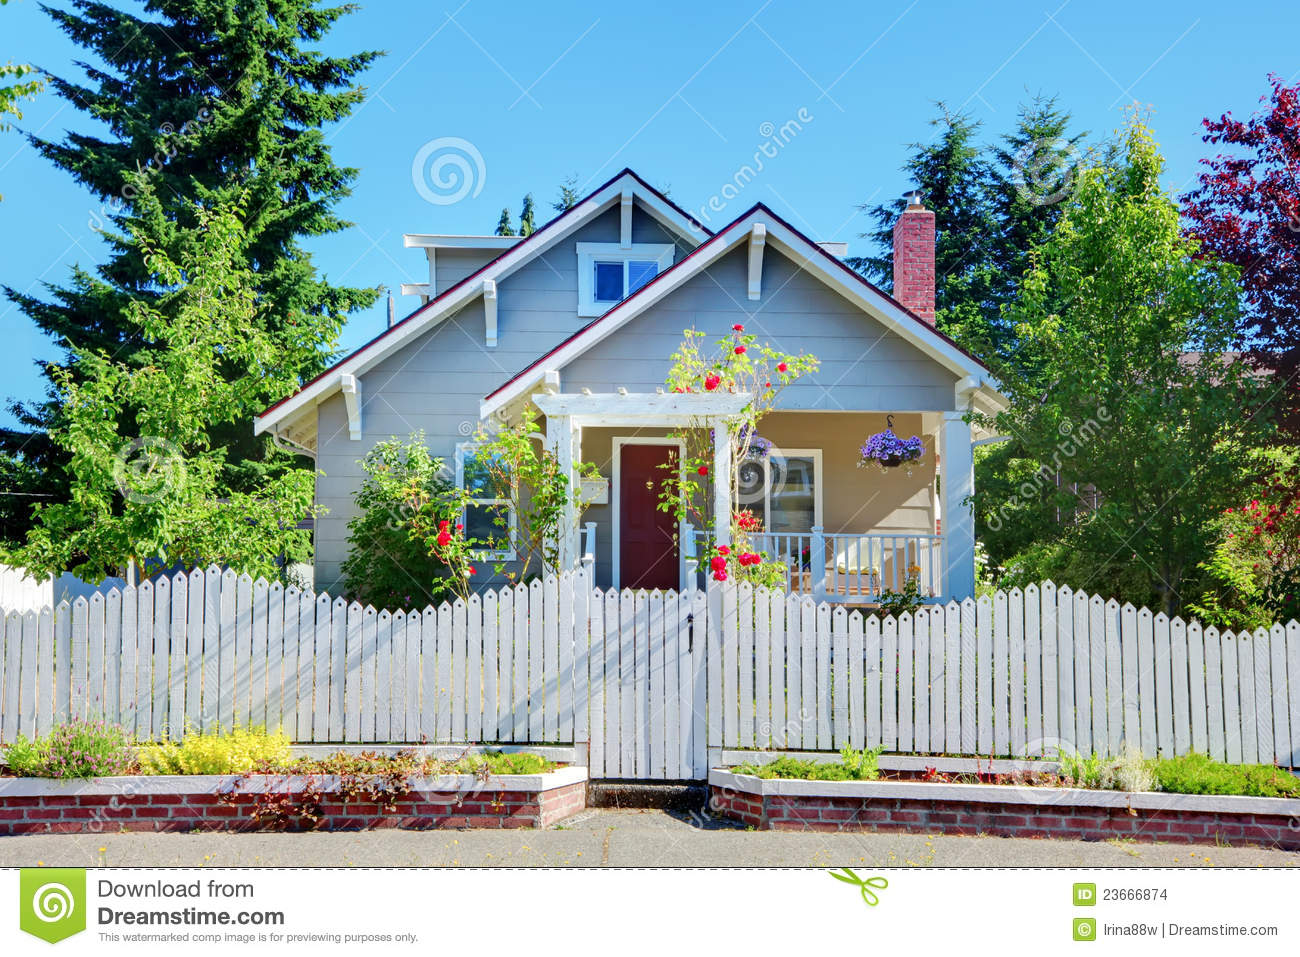 Grey Small Cute House With White Fence And Gates Stock